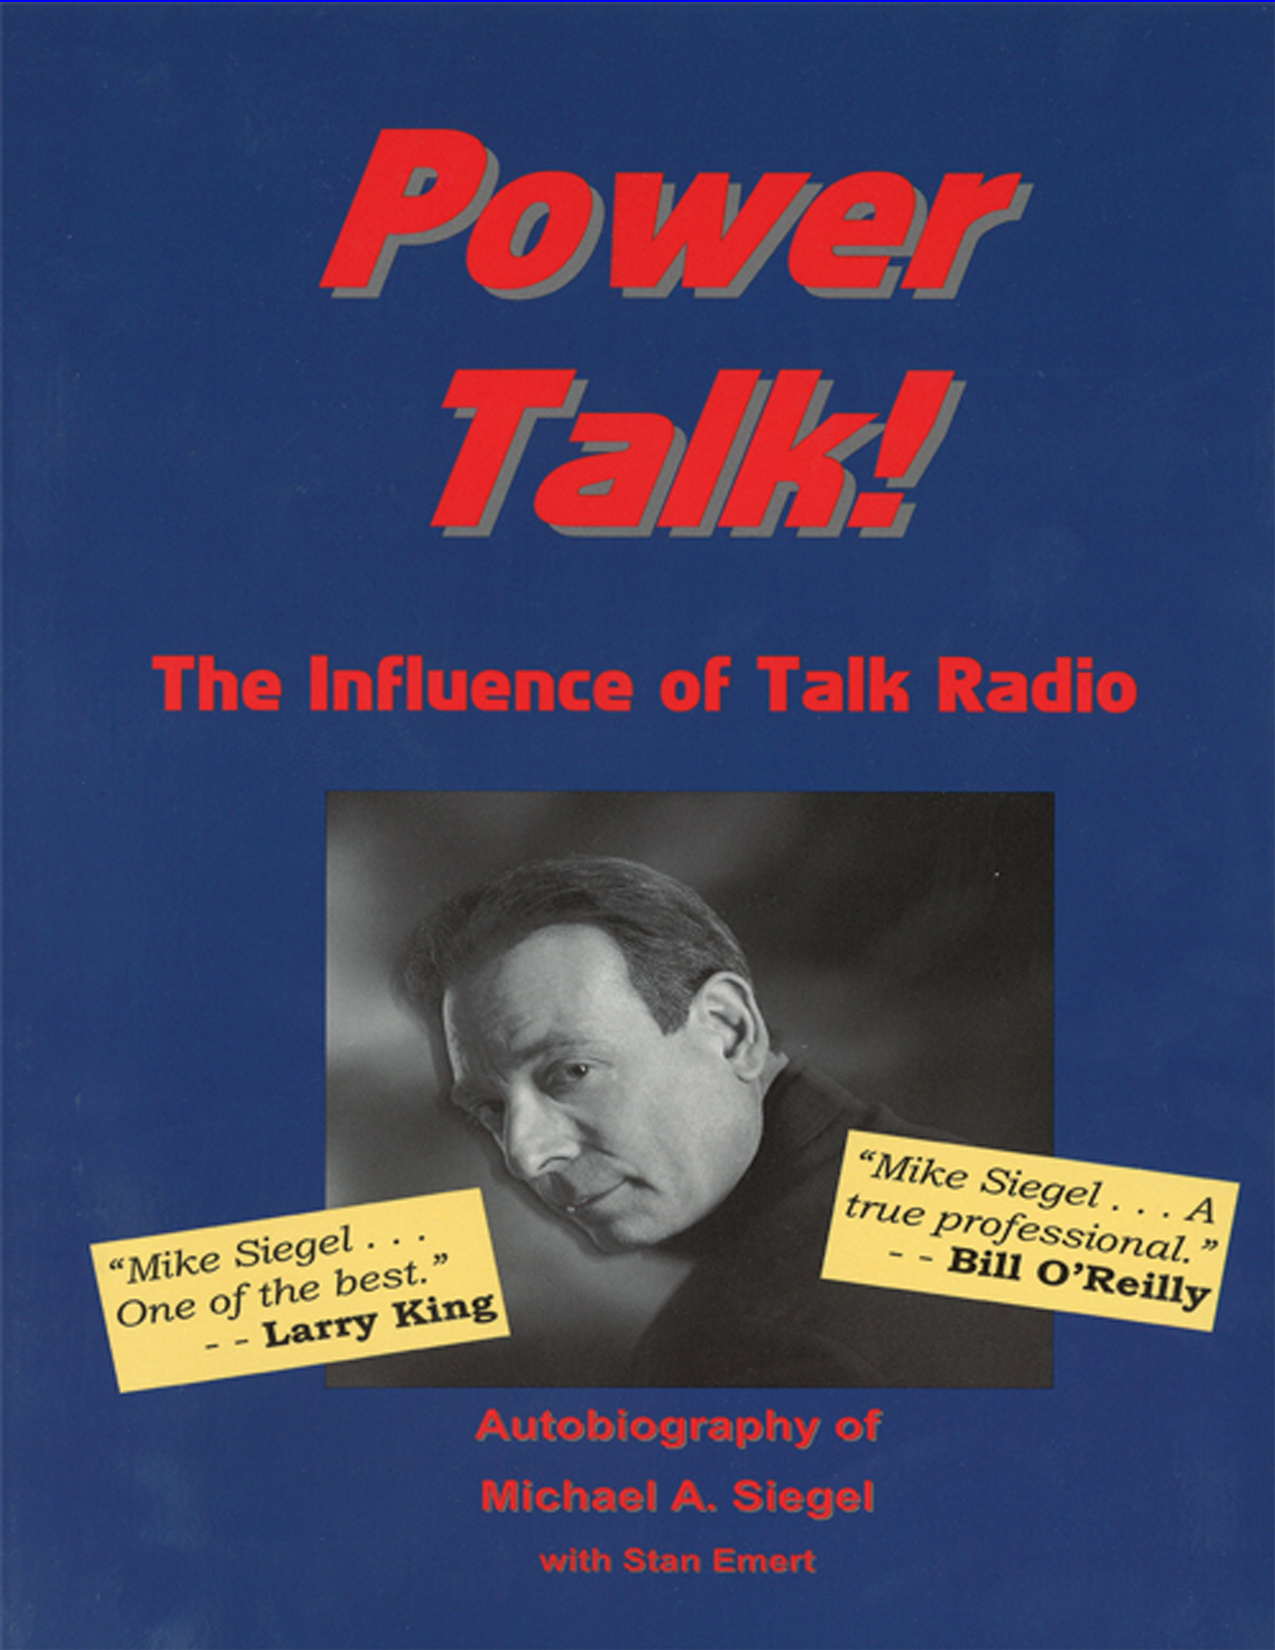 Power Talk: The Influence of Talk Radio in Paperback